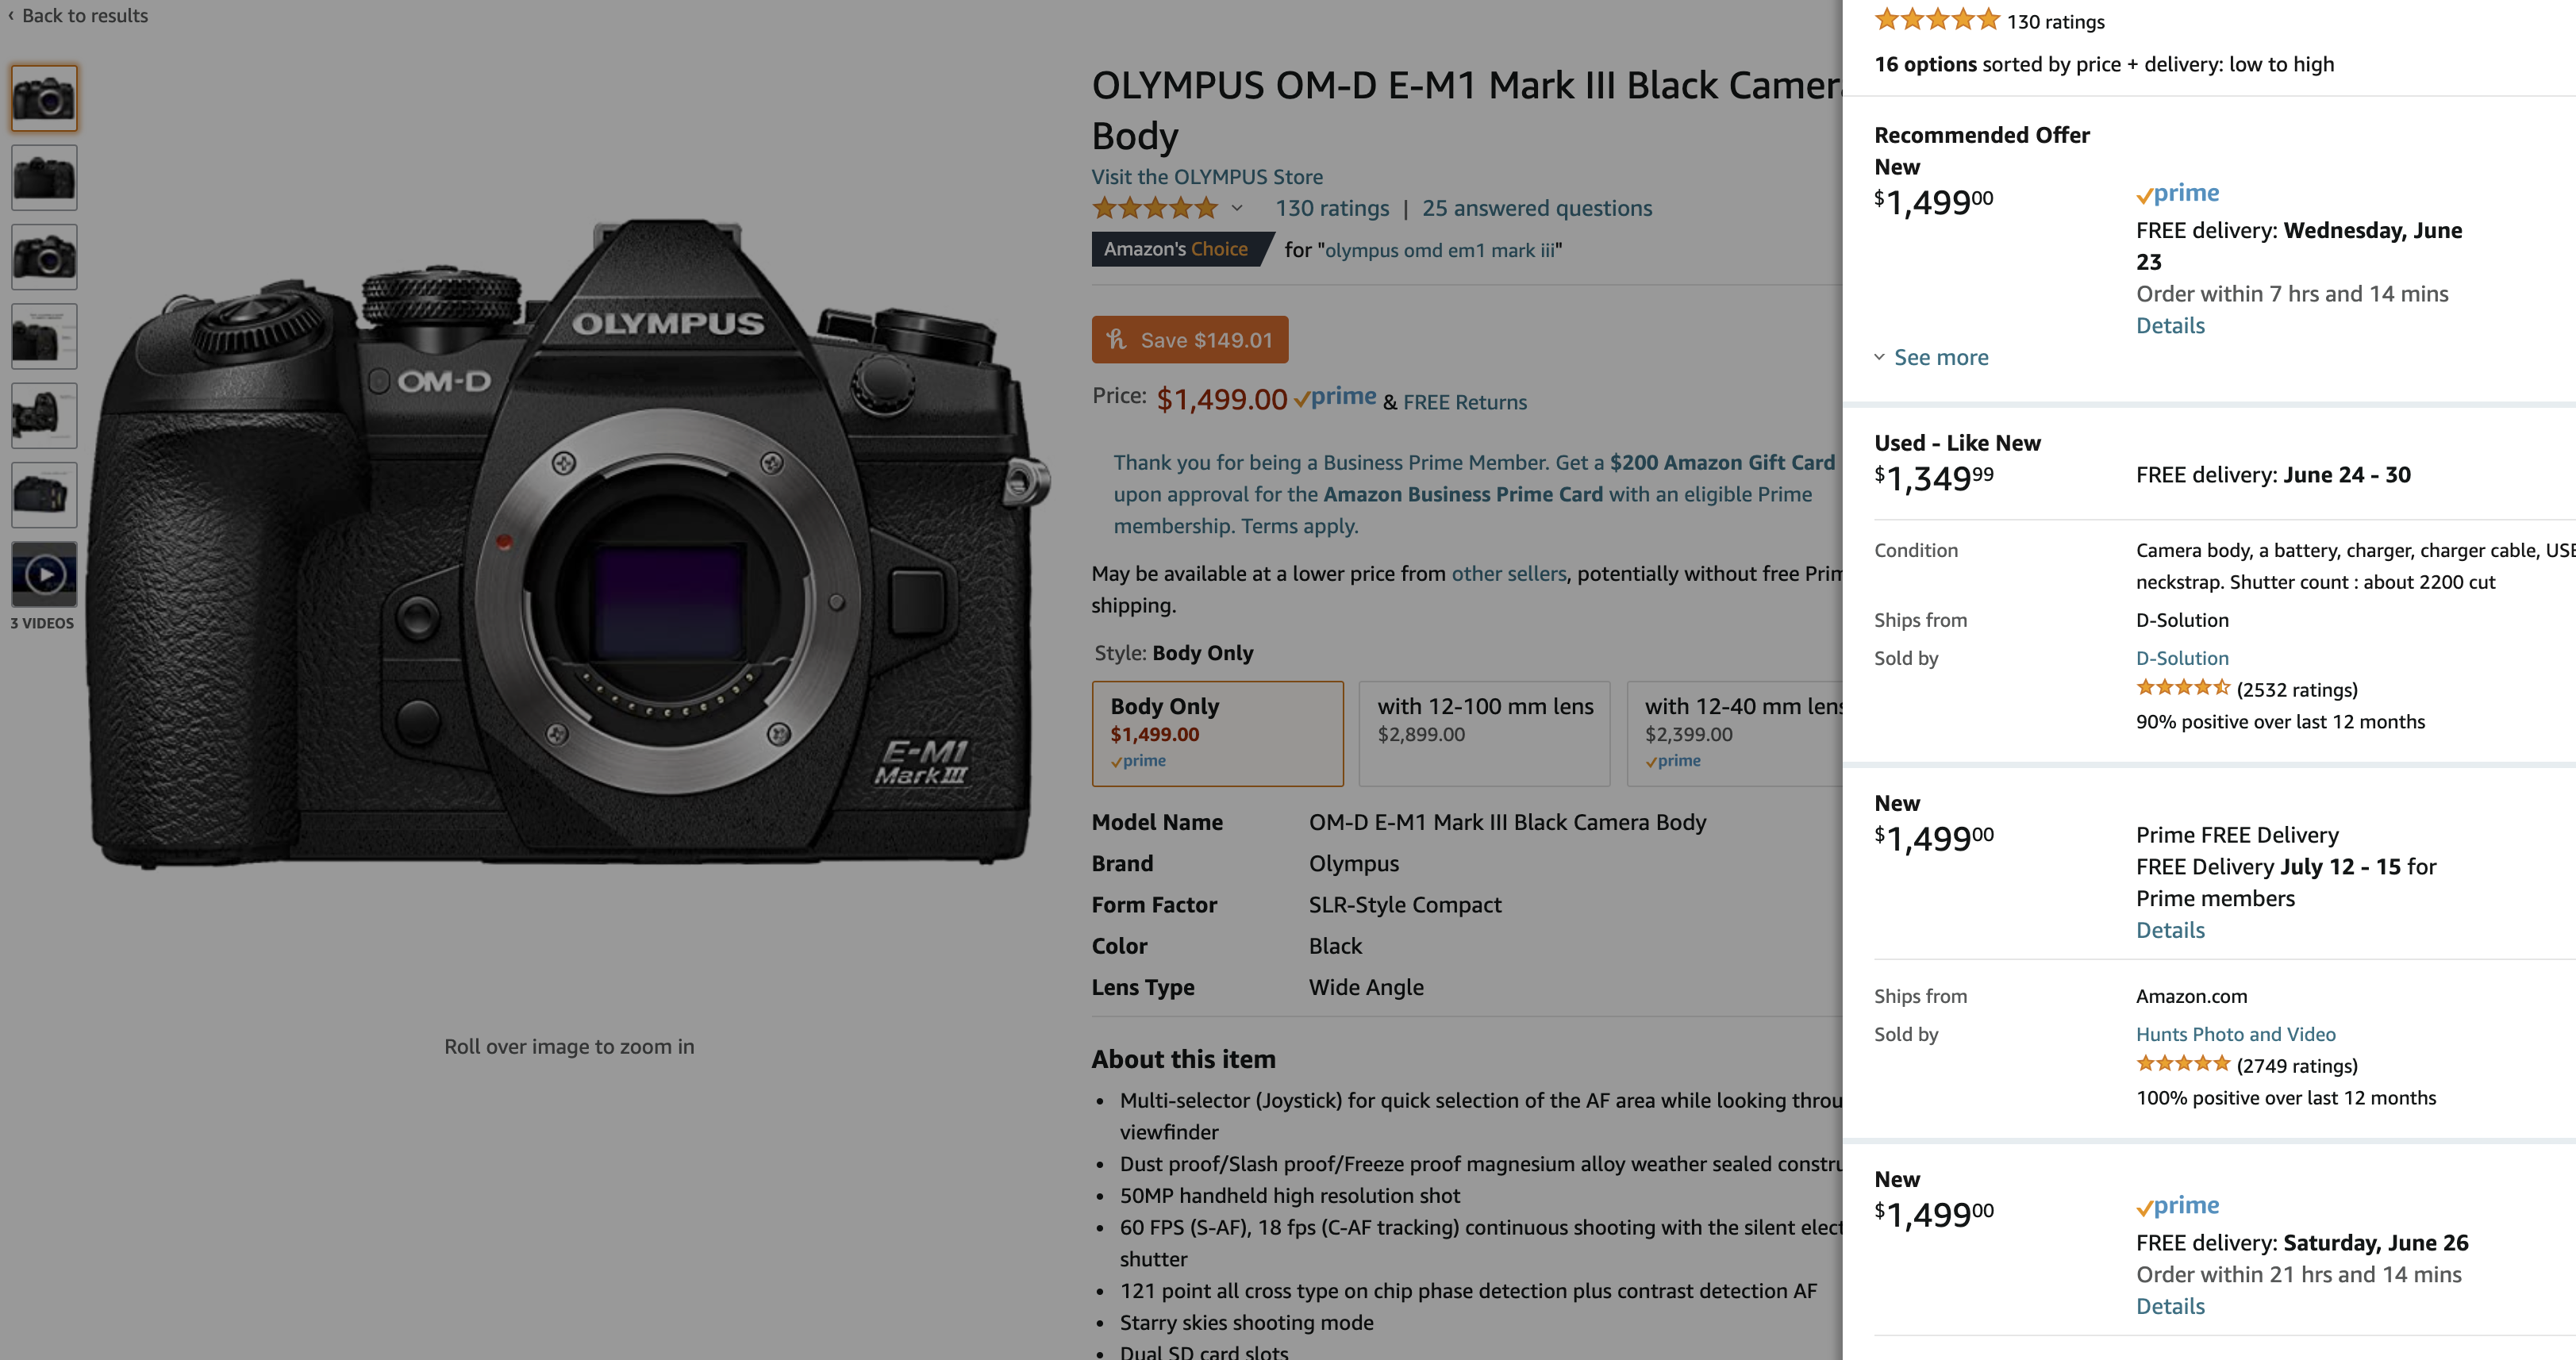 We Found Good Prices on the Olympus OMD EM1 Mk III and More!